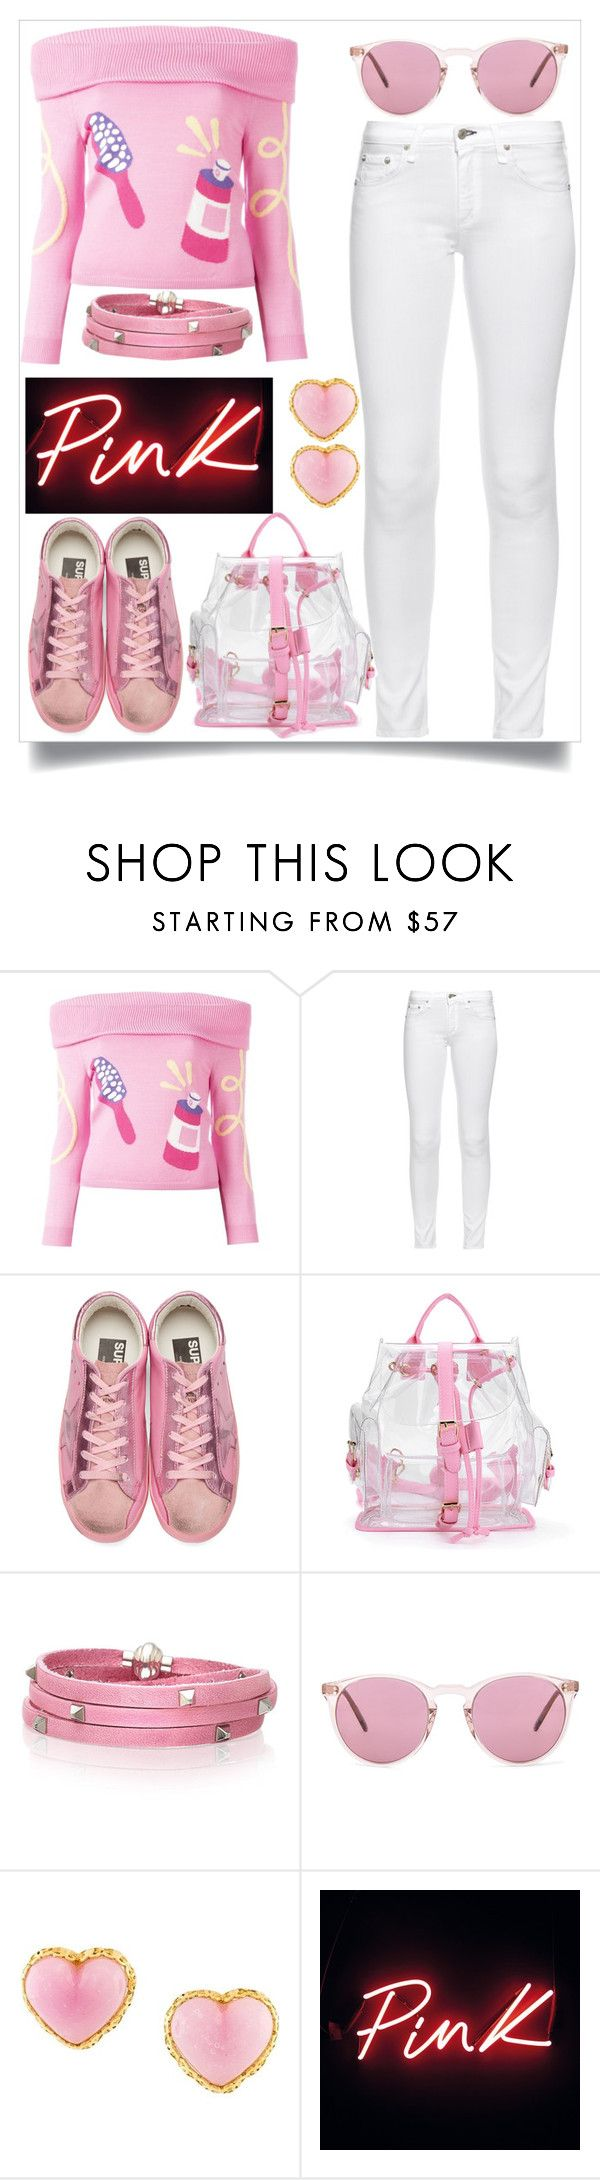 """""""Pink Winter Outfit"""" by tlb0318 ❤ liked on Polyvore featuring Jeremy Scott, rag & bone, Golden Goose, Sif Jakobs Jewellery, Oliver Peoples and Chanel"""